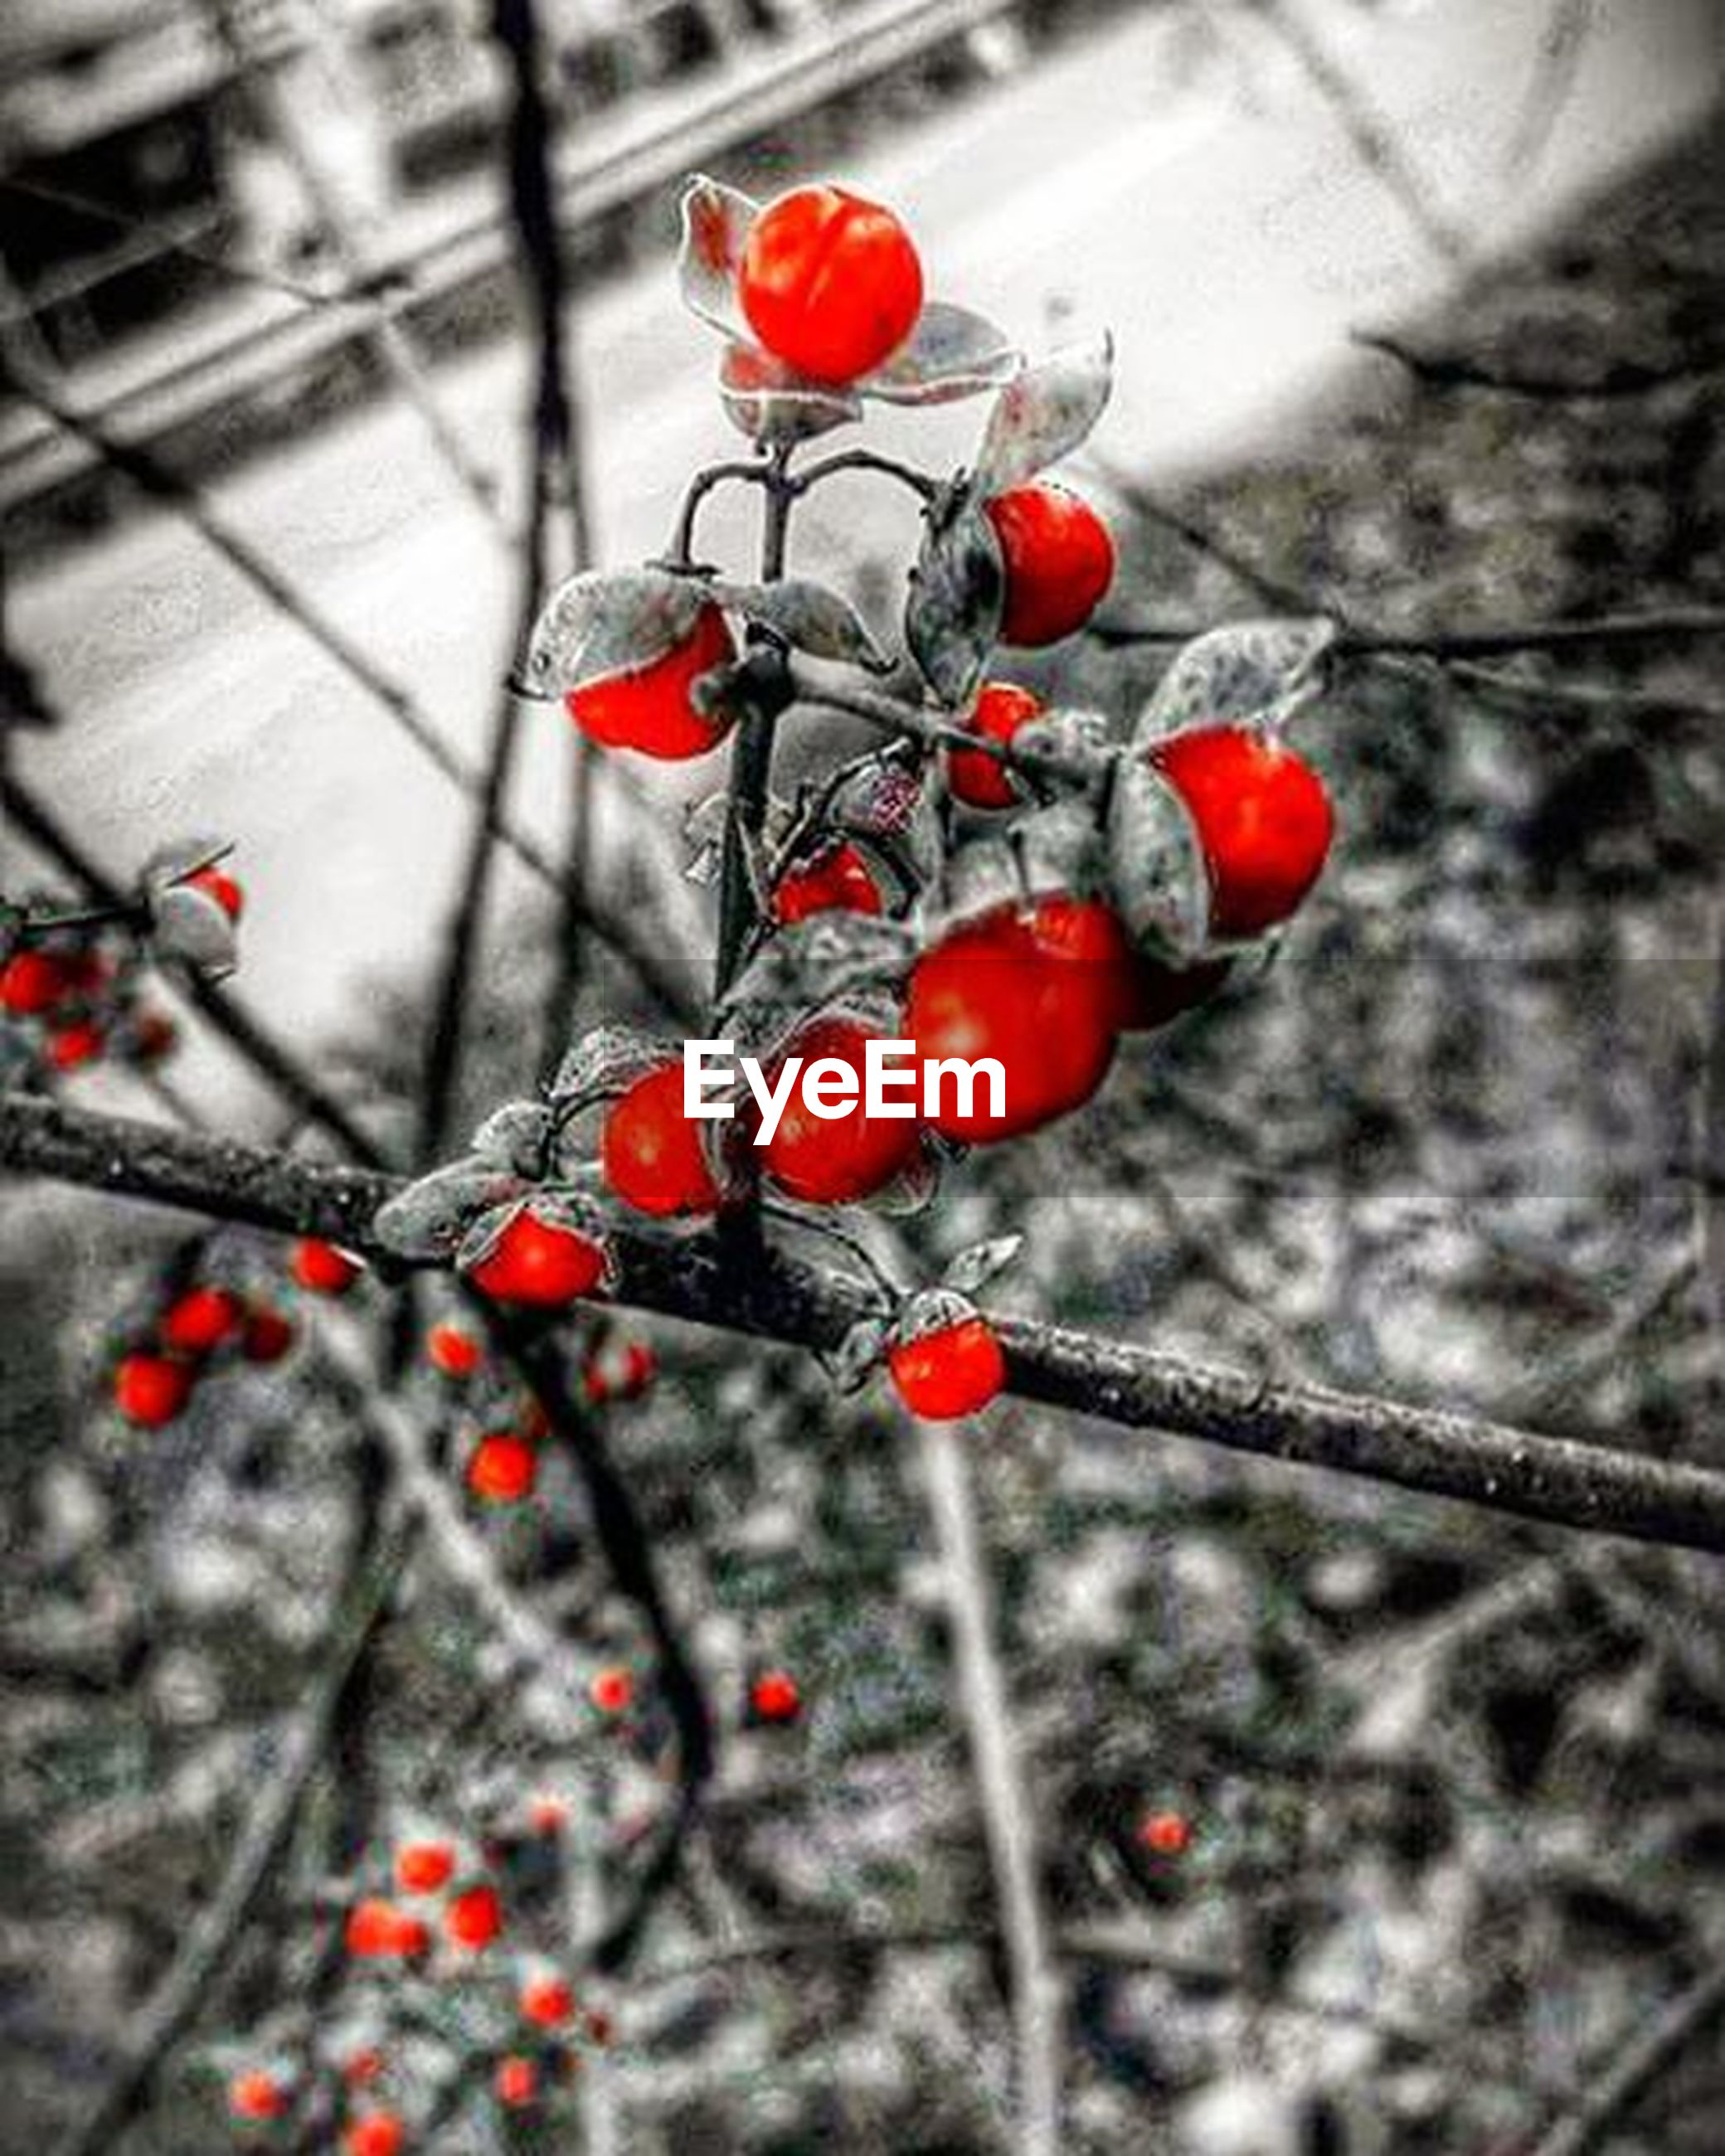 fruit, red, berry fruit, freshness, food and drink, focus on foreground, branch, berry, close-up, cherry, food, growth, selective focus, twig, nature, tree, ripe, healthy eating, hanging, day